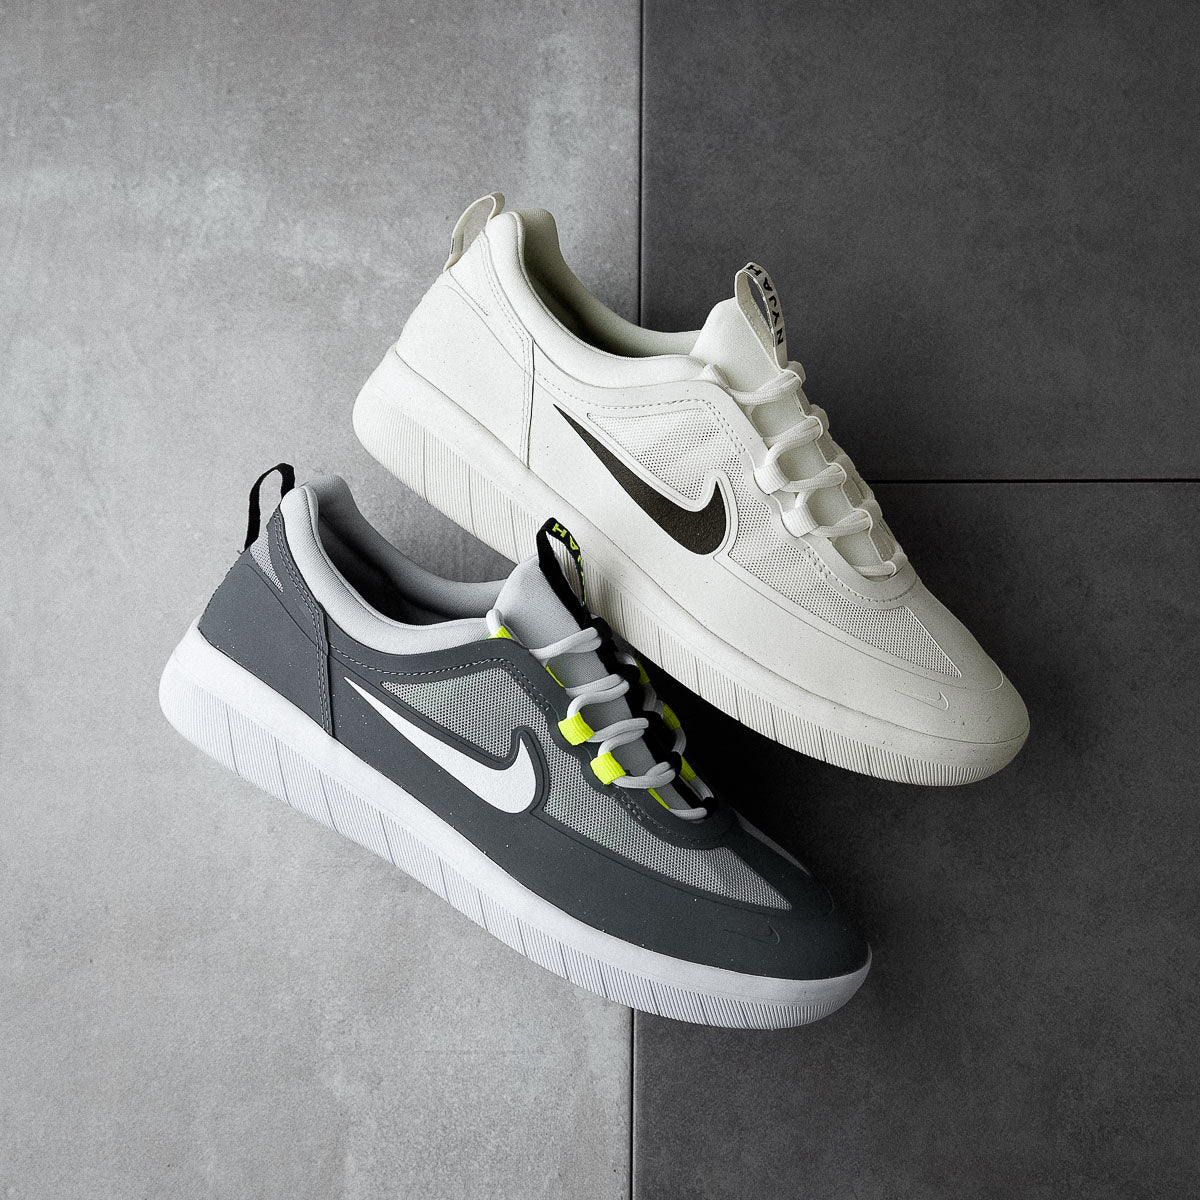 Introducing: The Nike SB Nyjah Free 2 | Flatspot